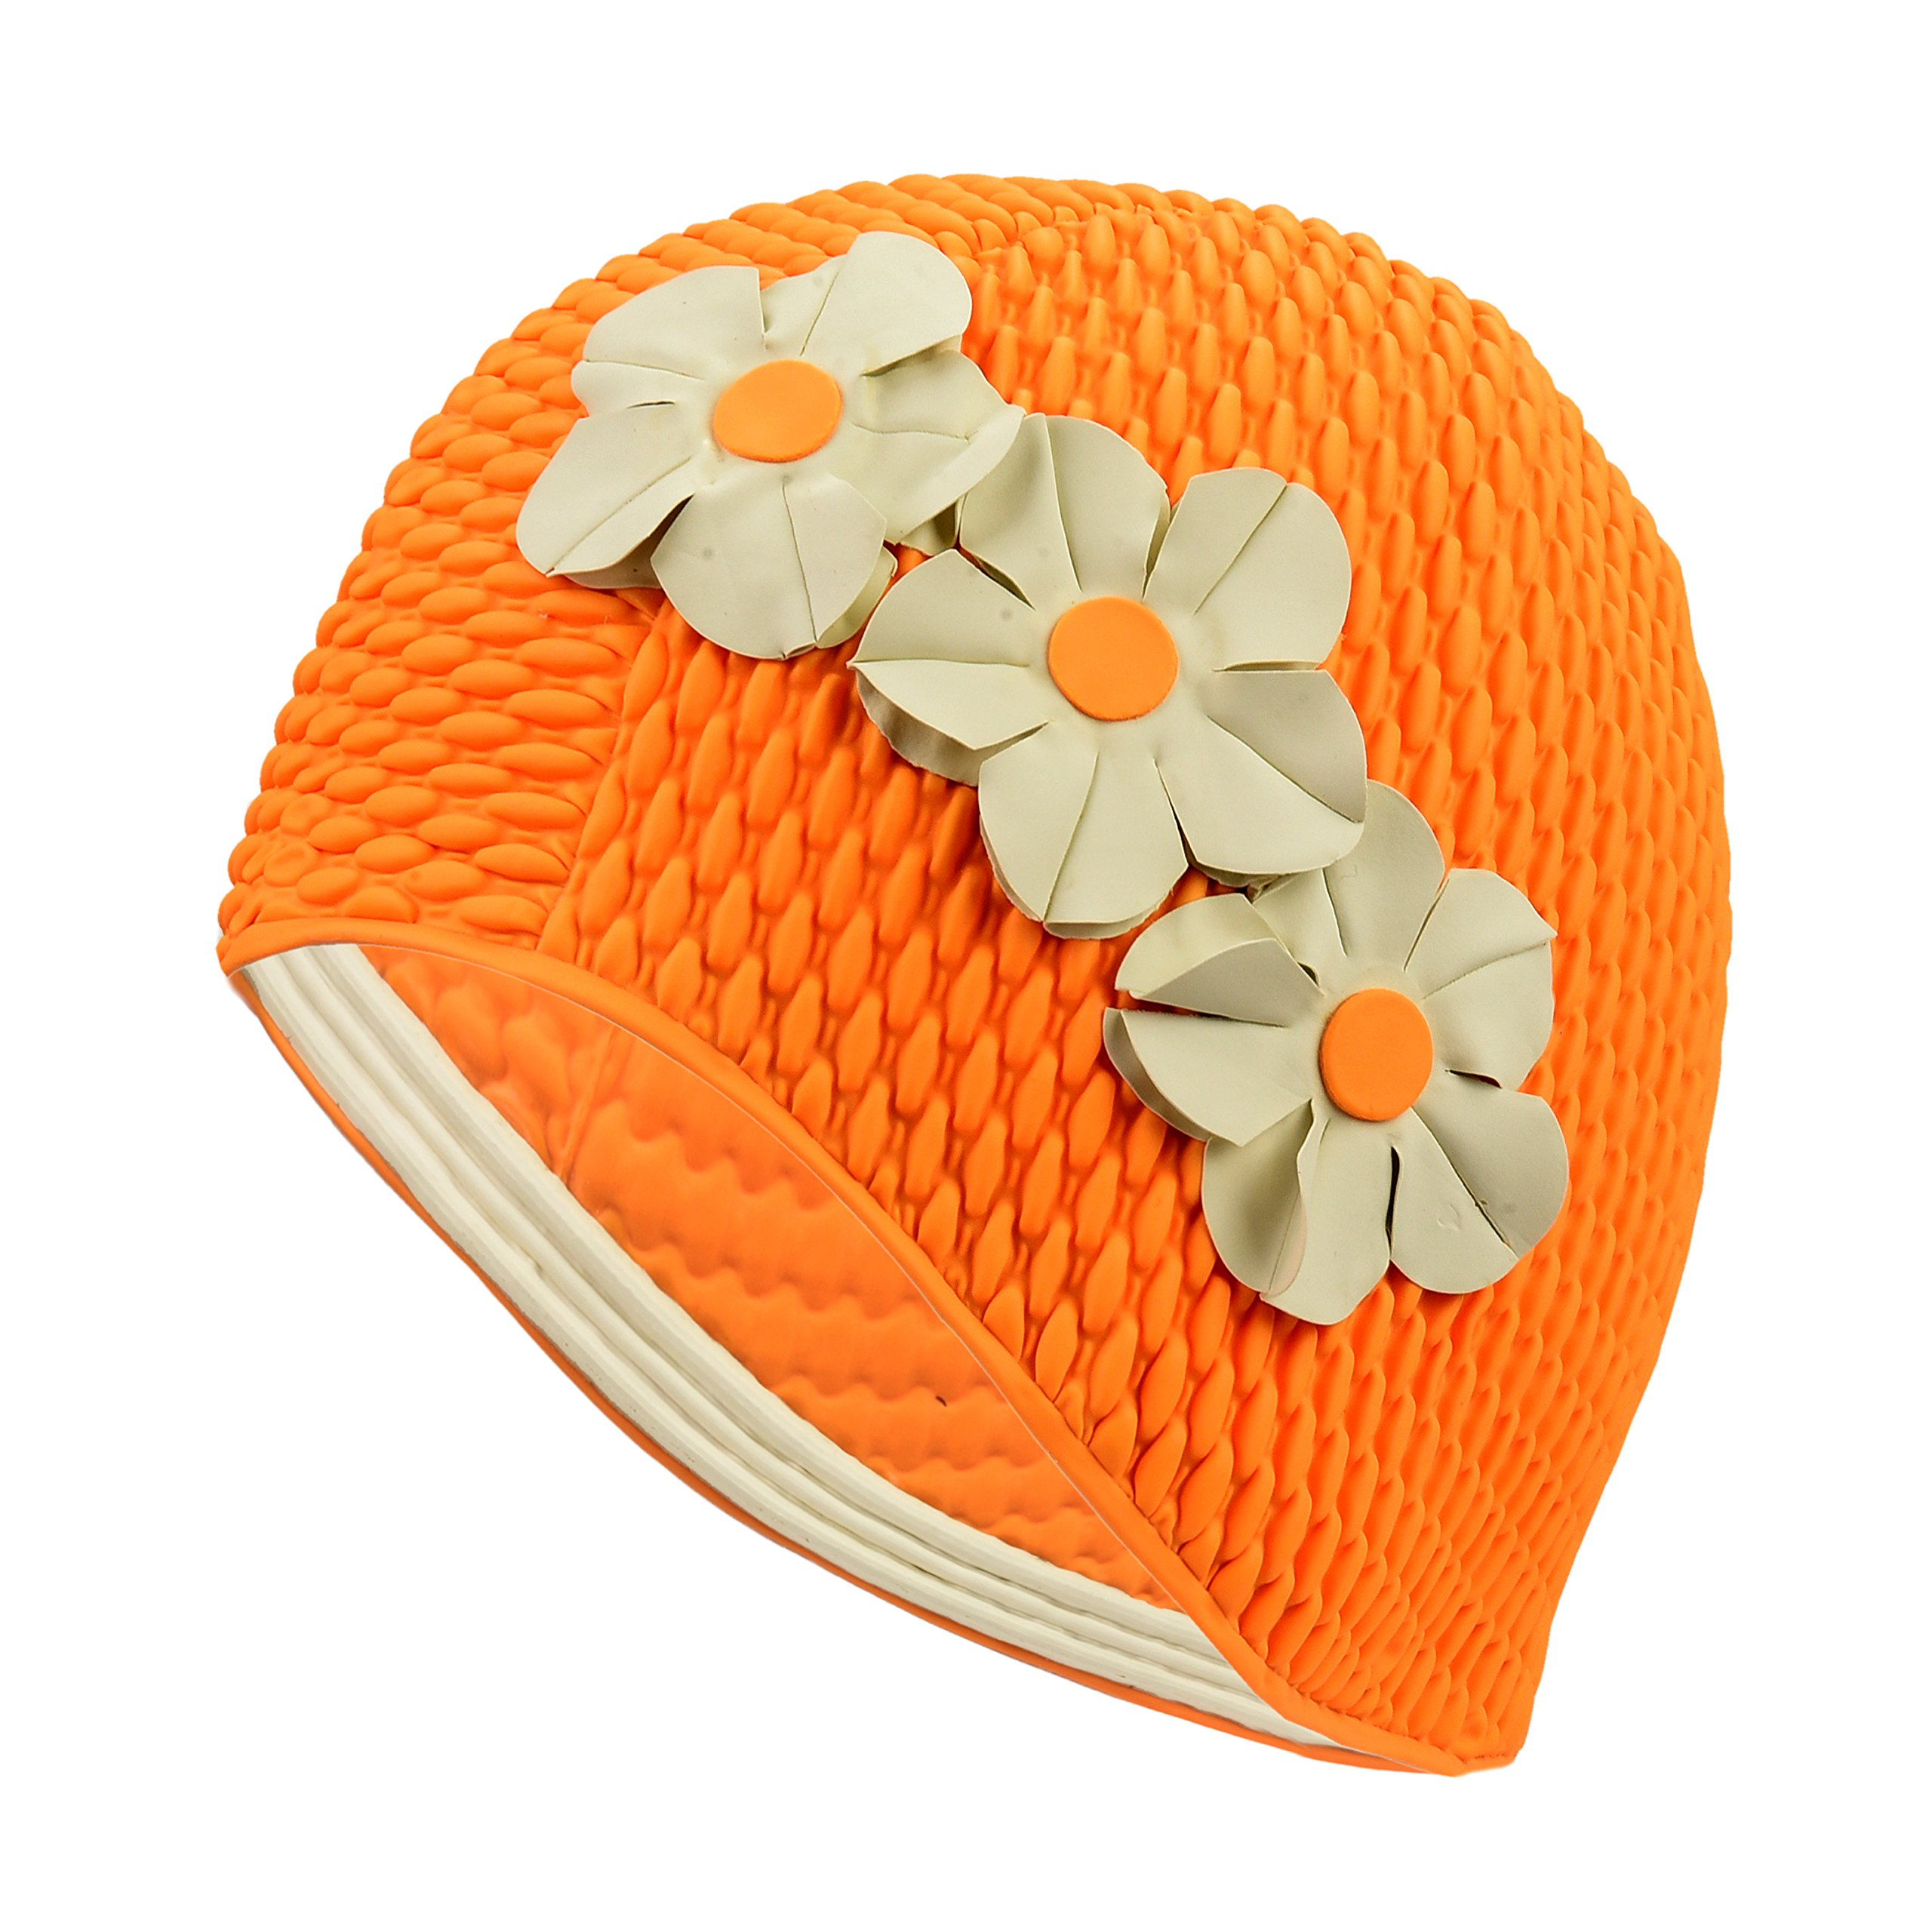 Latex Swim Cap - Women Stylish Swimming Cap Great for Ladies, Perfect to Keep Hair Dry - Suitable for Long Hair - Bubble Crepe with Orange with White Flowers